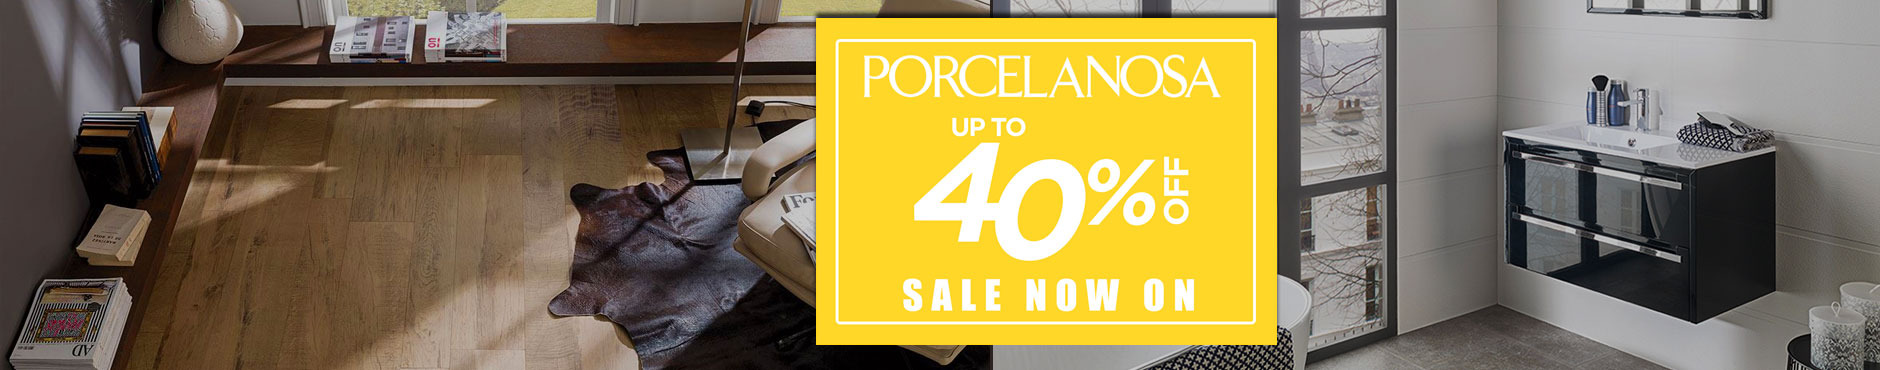 Porcelanosa Sale 18th September - 18th October 2018